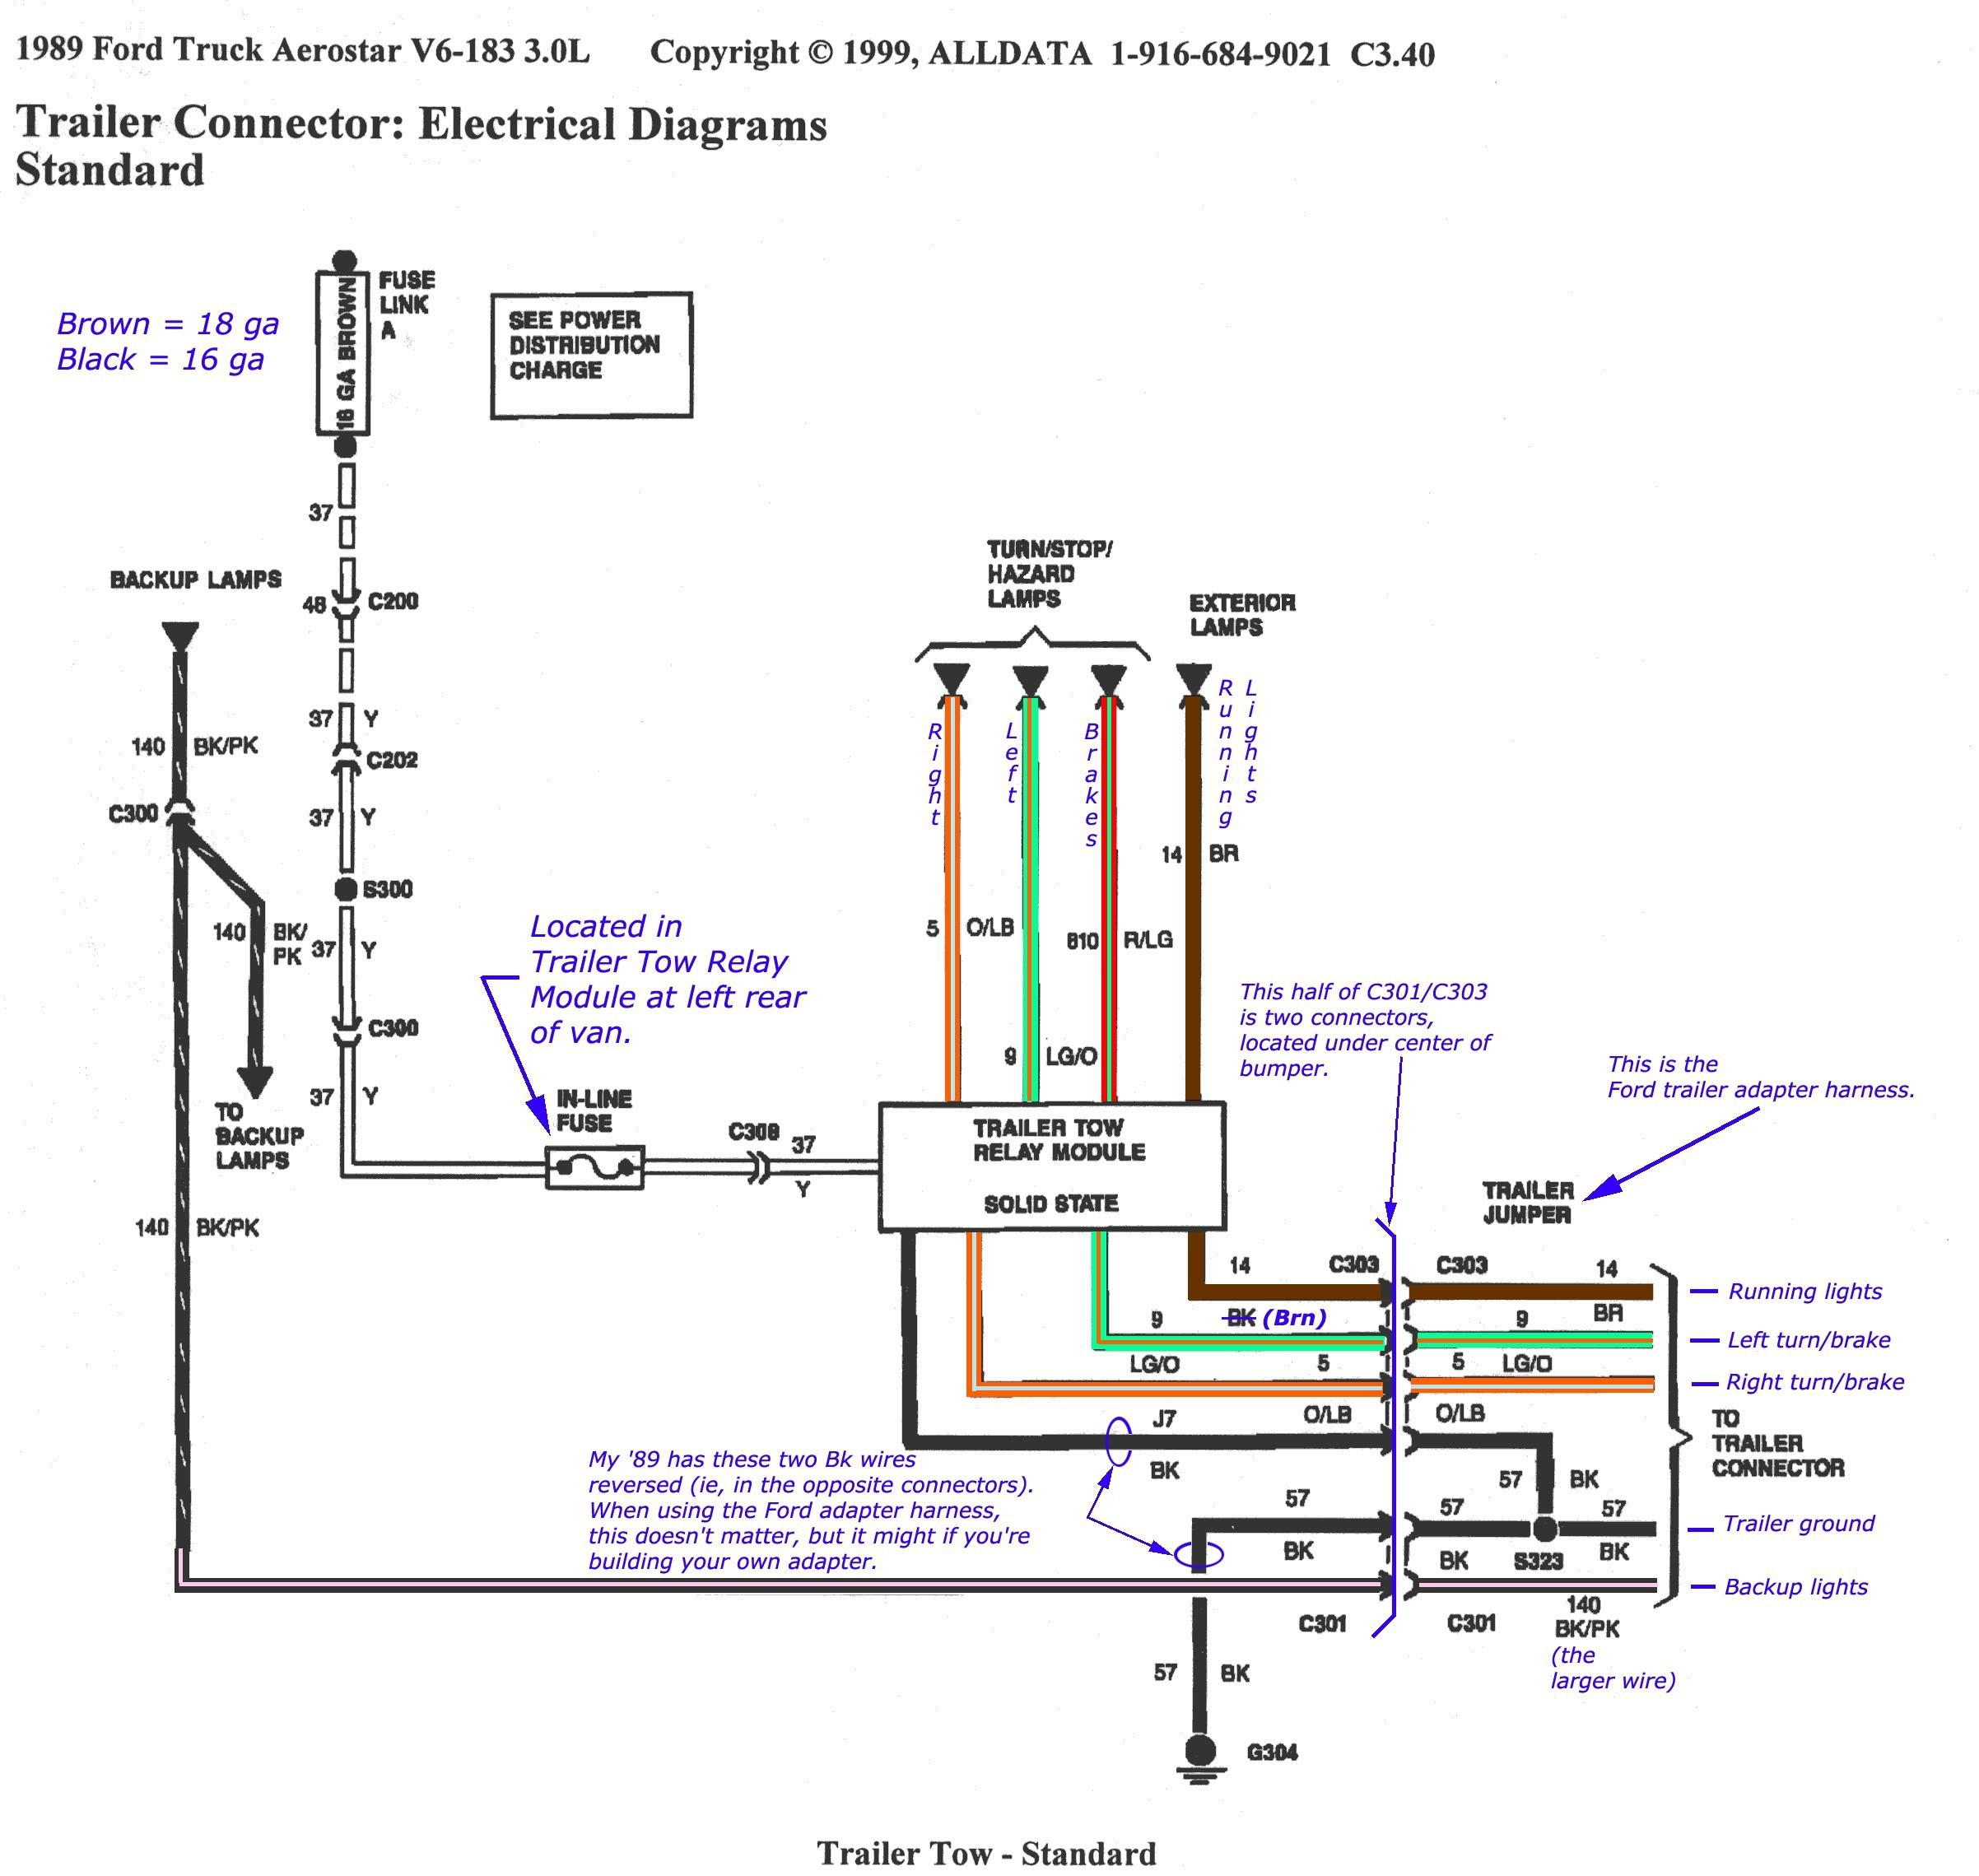 Trailer Wiring Ford Truck - Wiring Diagram Data - Trailer Wiring Diagram